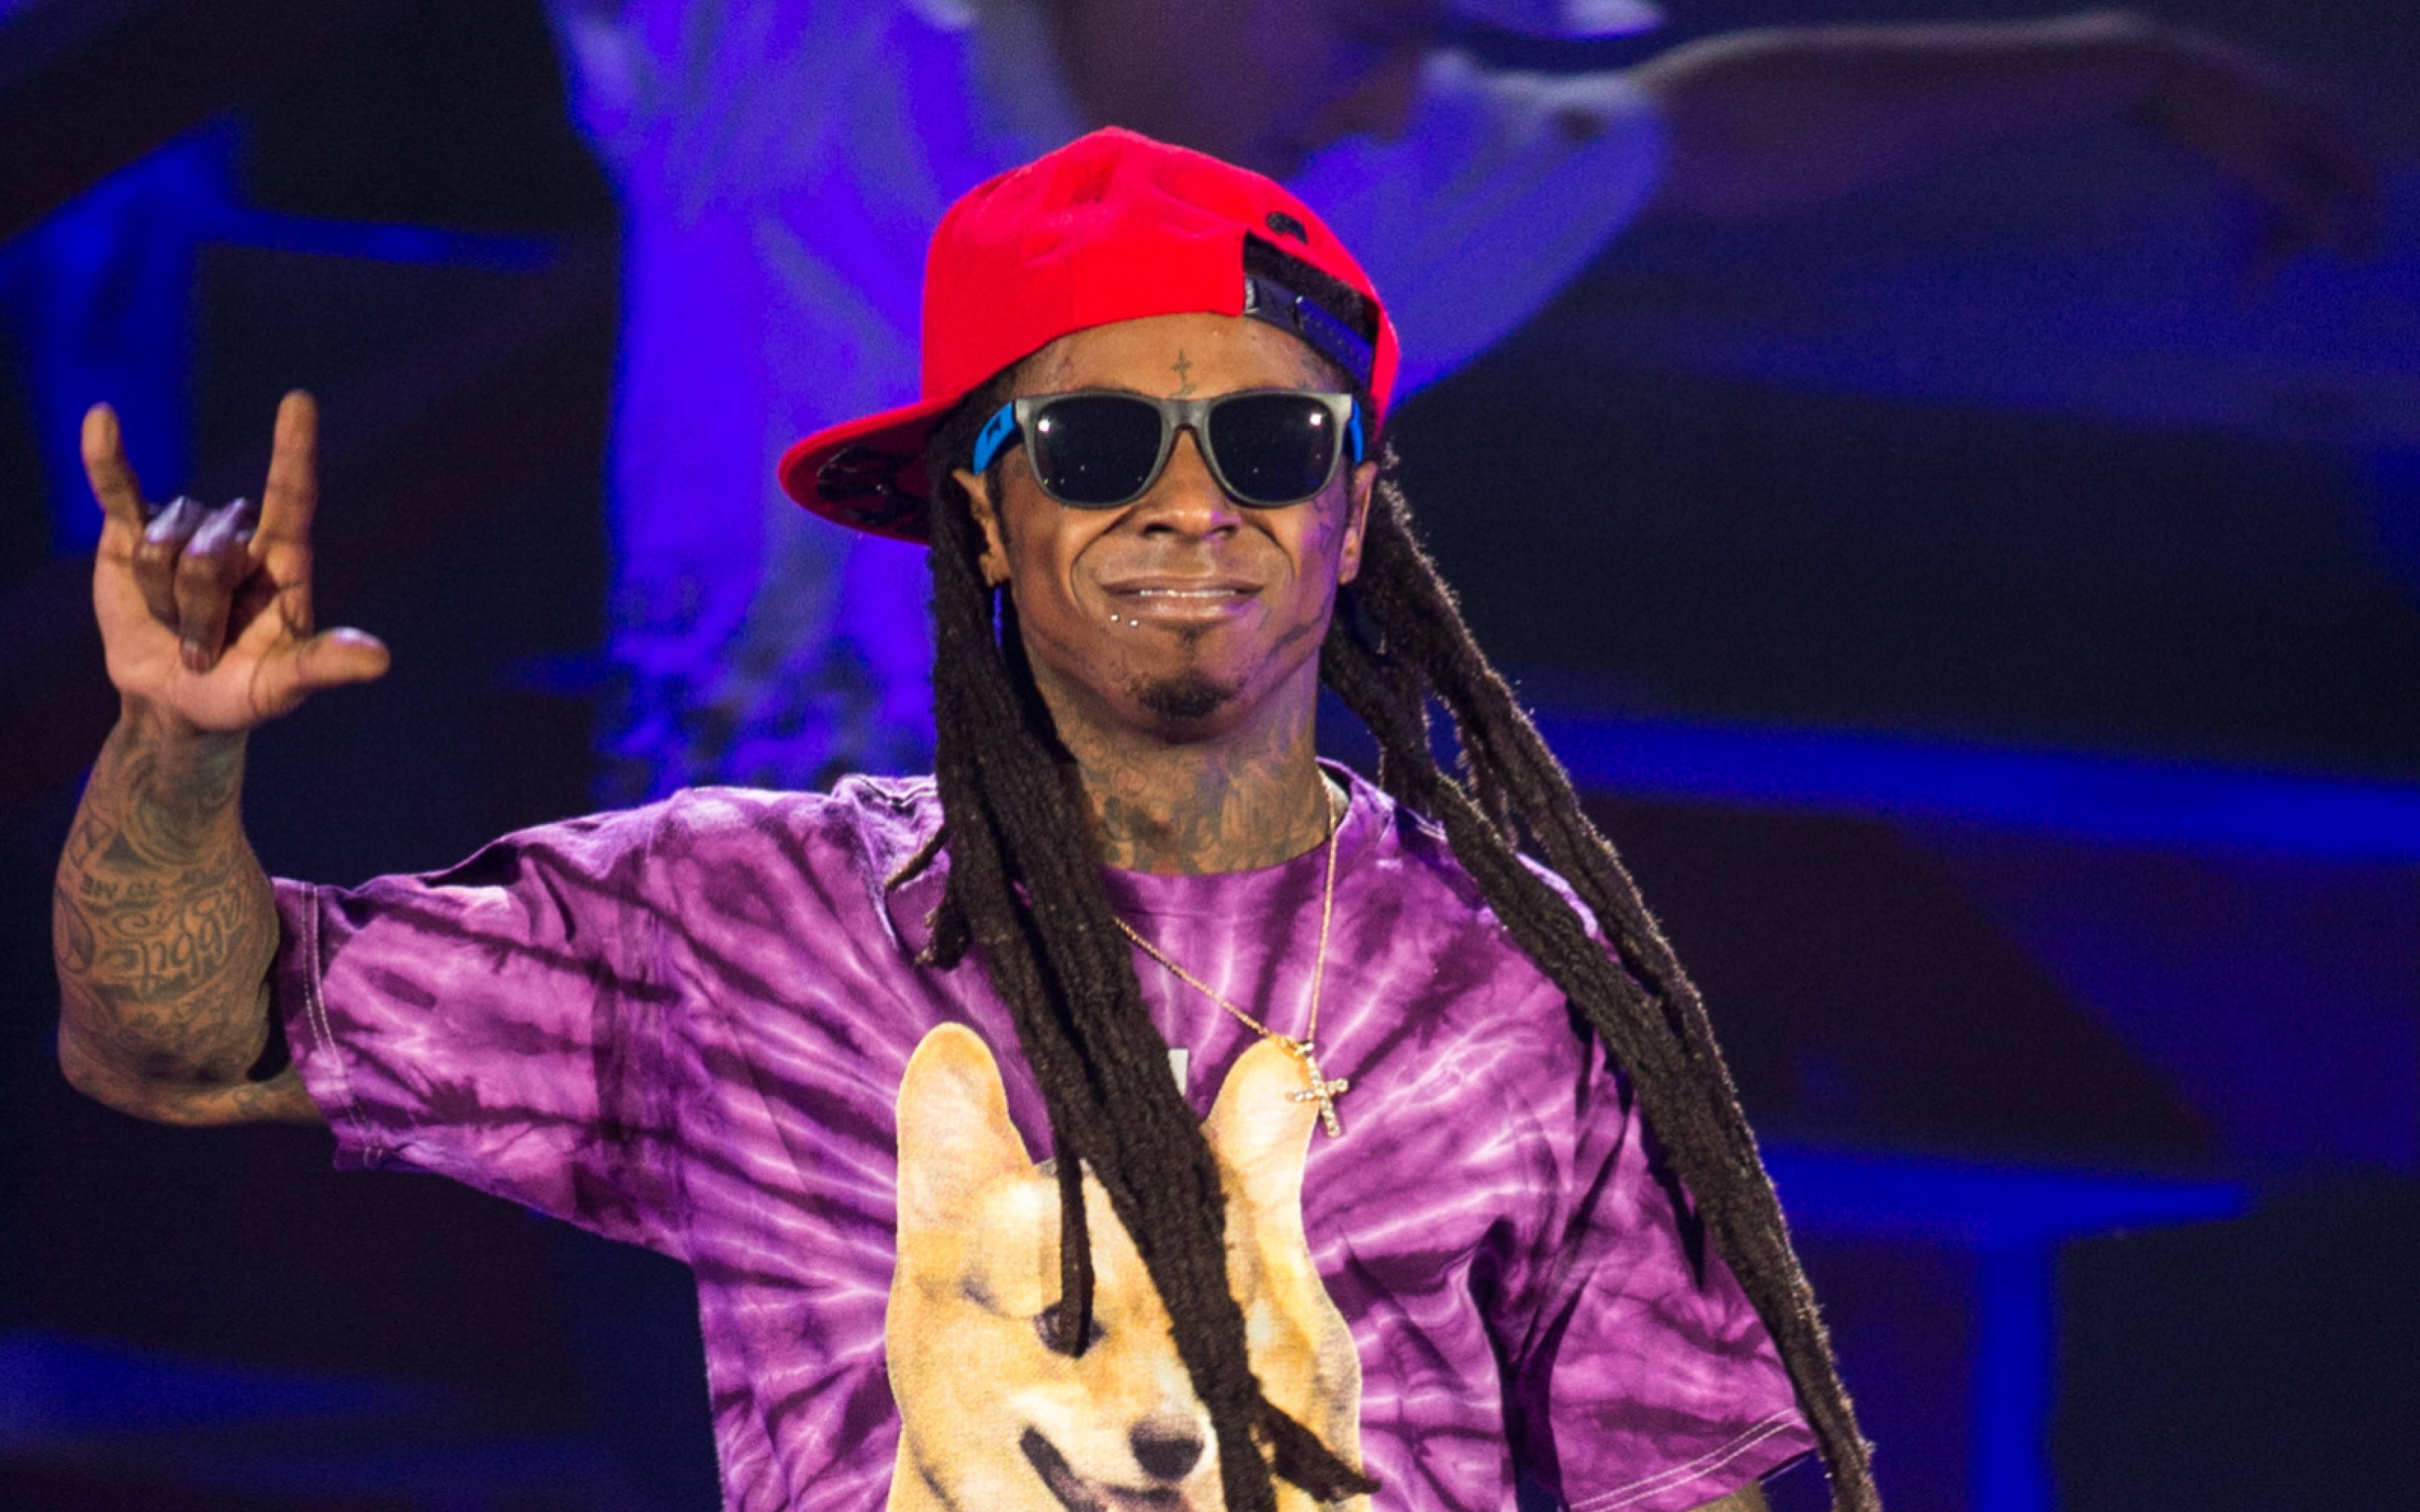 Lil Wayne Wallpapers 2015 Top Collections of Pictures Images 3840x2400